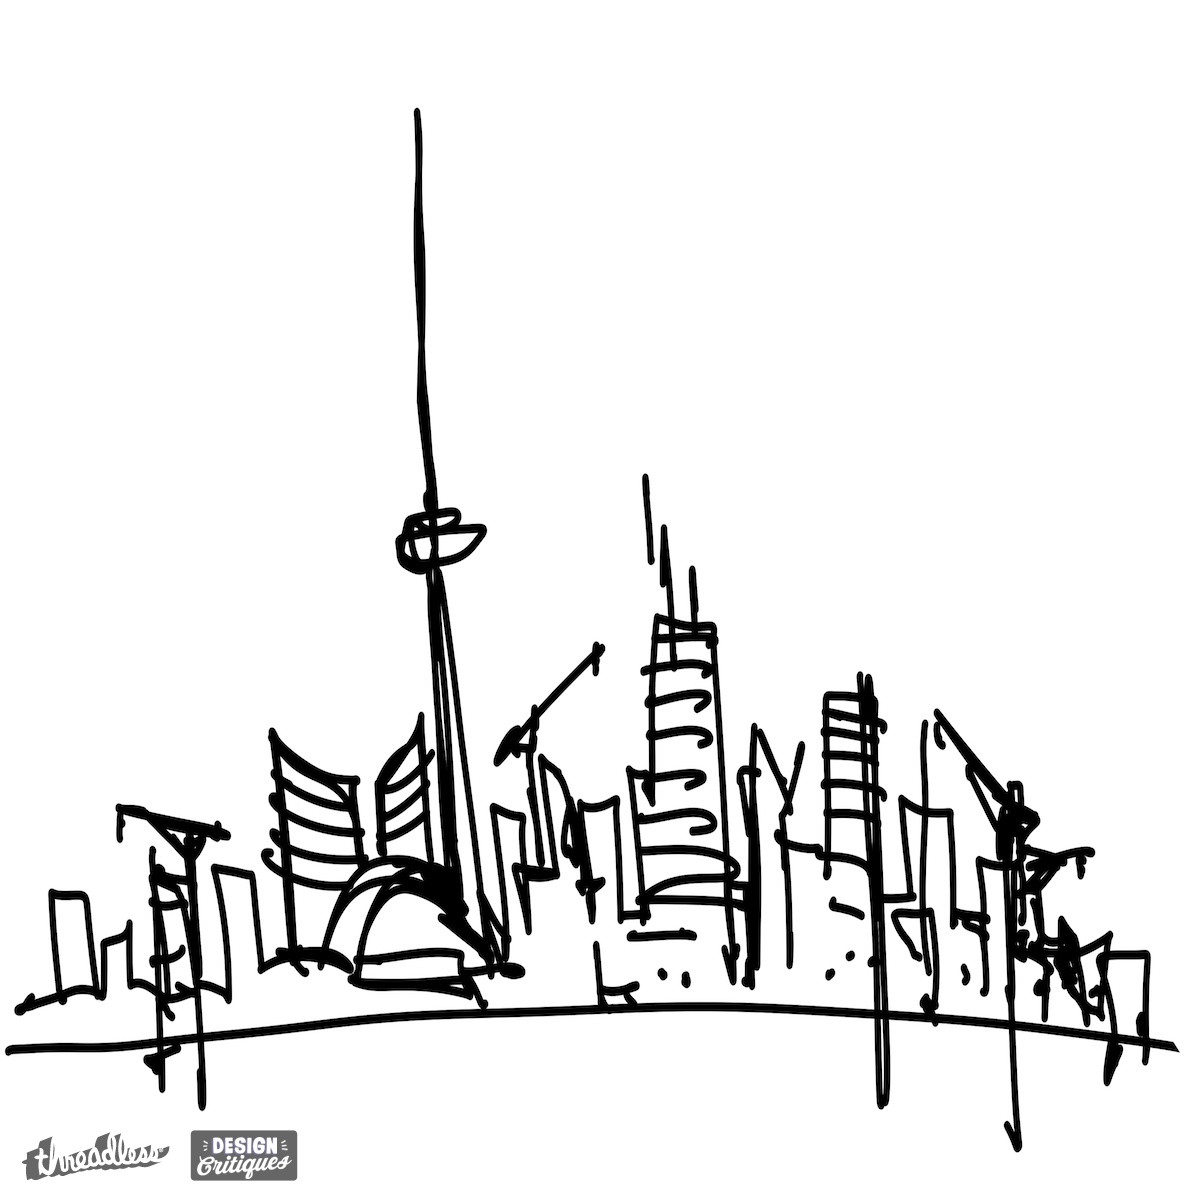 Drawn skyline graffiti skyline Skyline WearSkyline Toronto Threadless on